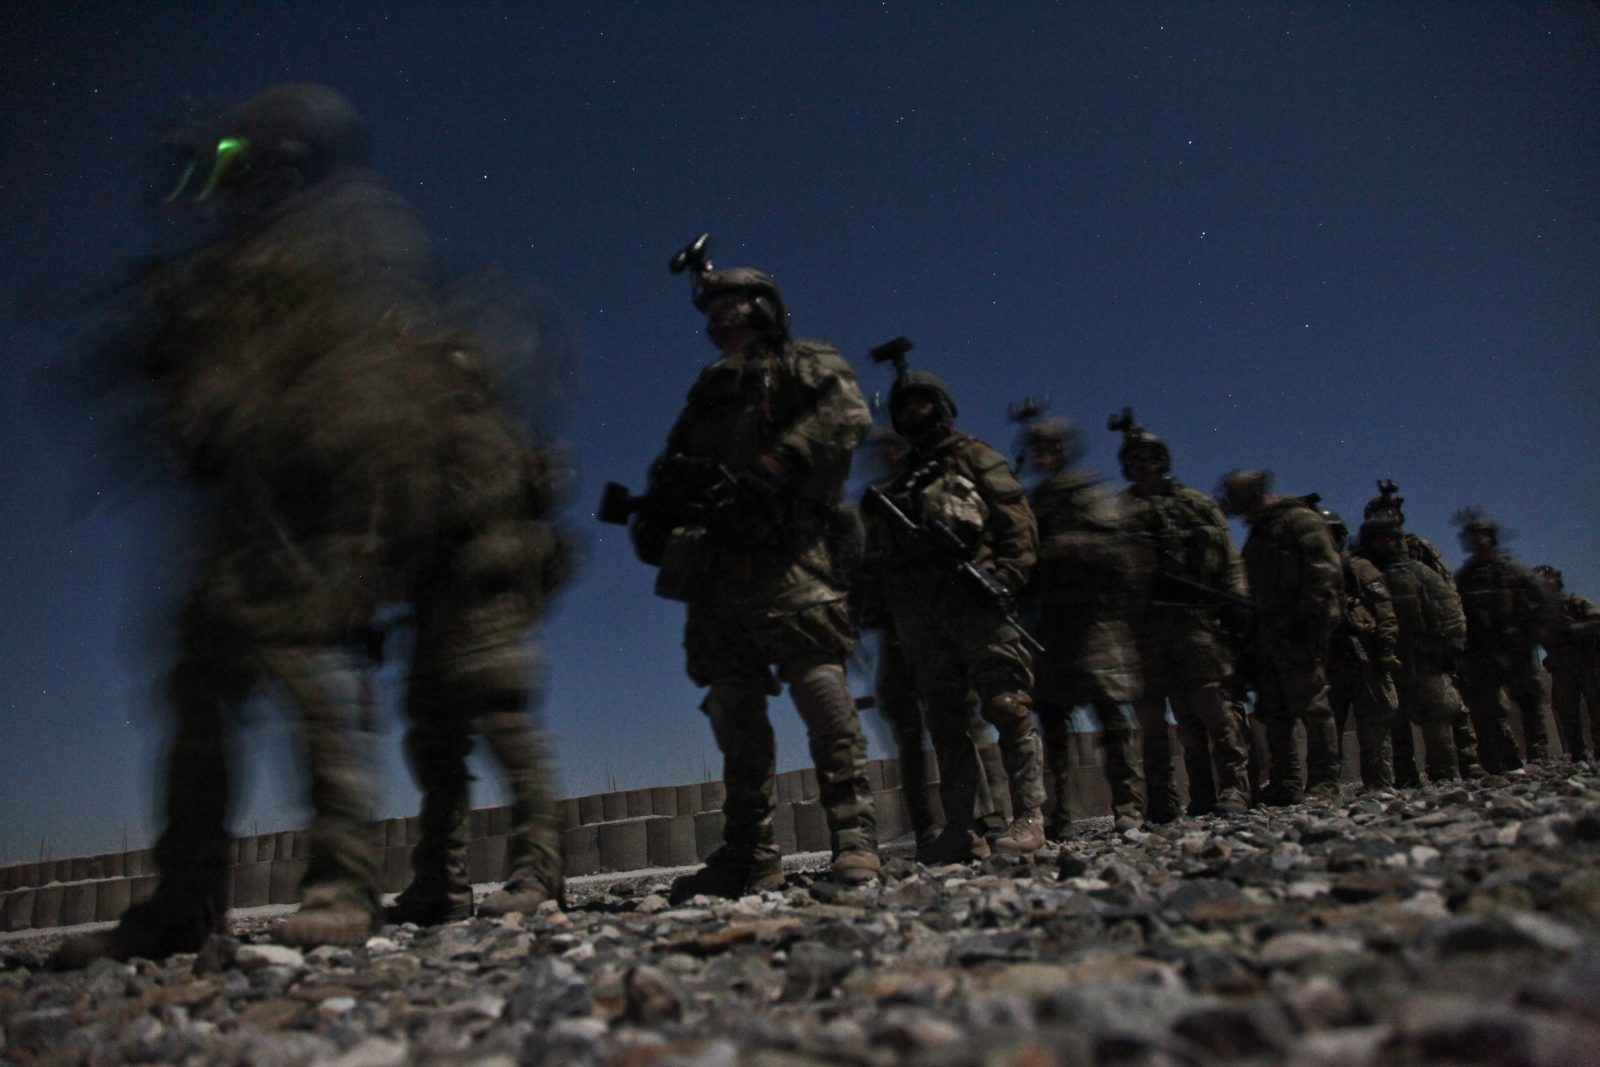 soldiers marching at night